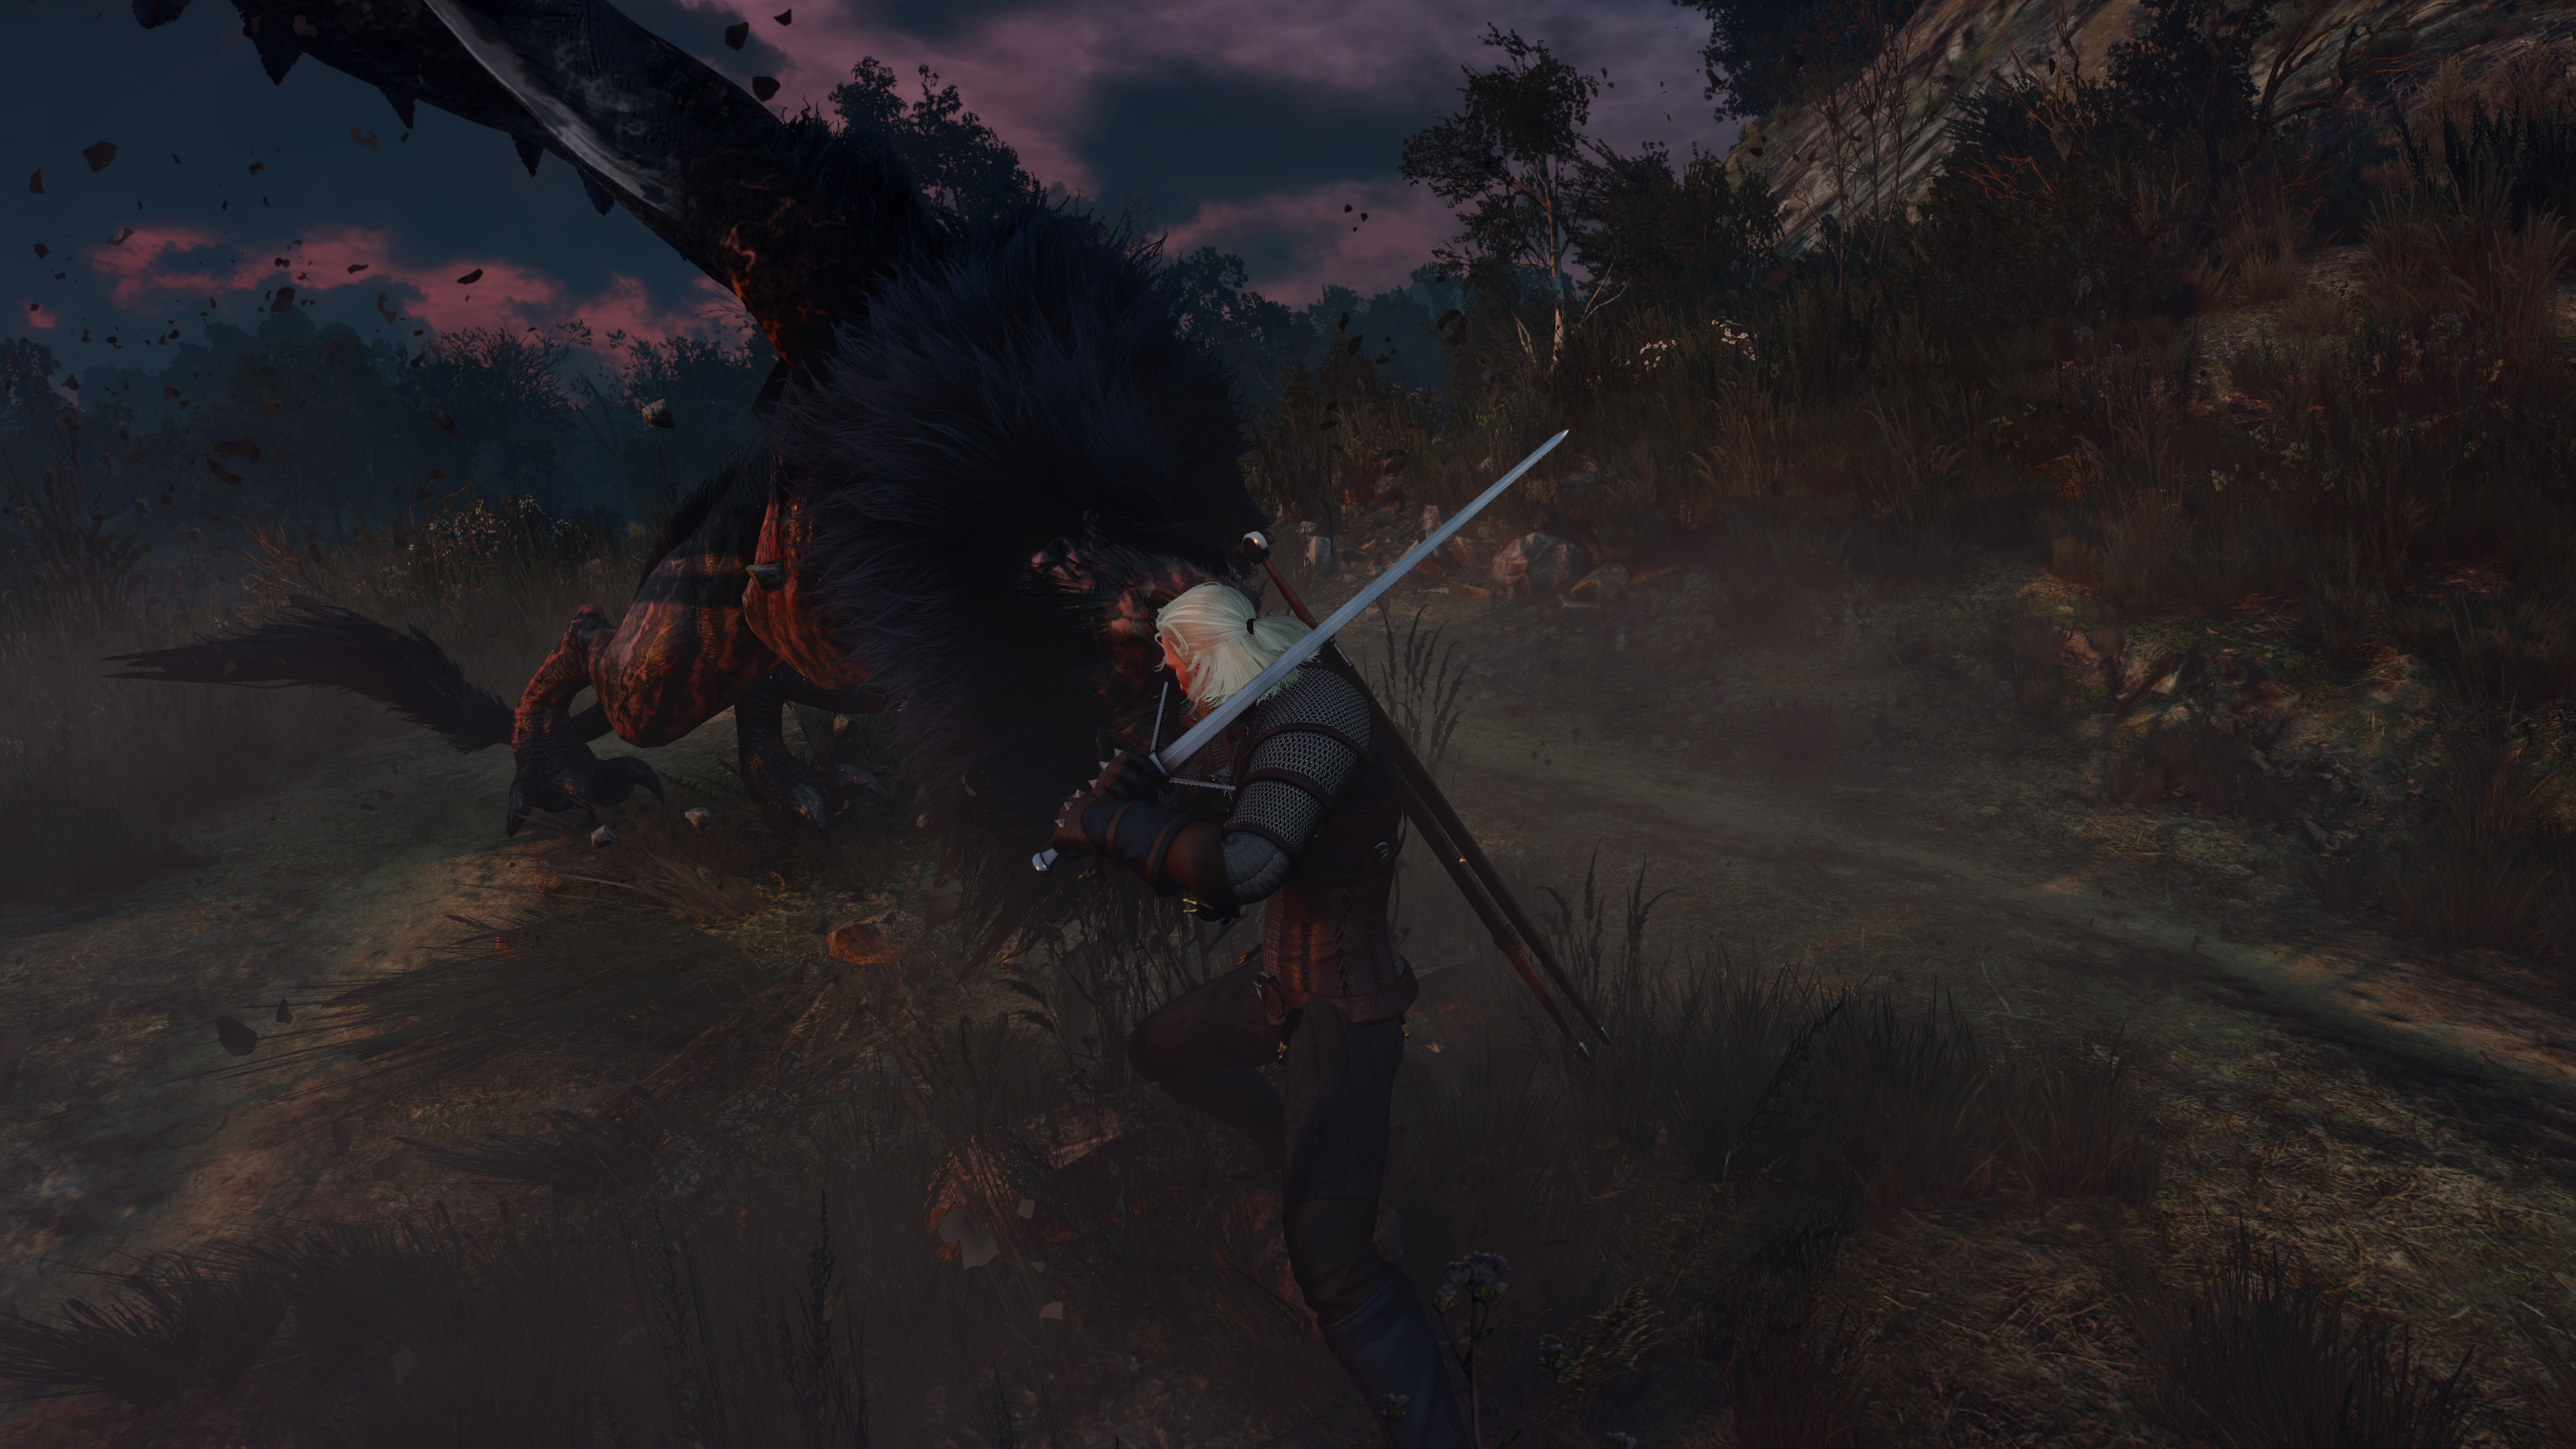 Wild Hunt - Witcher 3: Wild Hunt, the Geralt, Wild Hunt, Witcher 3